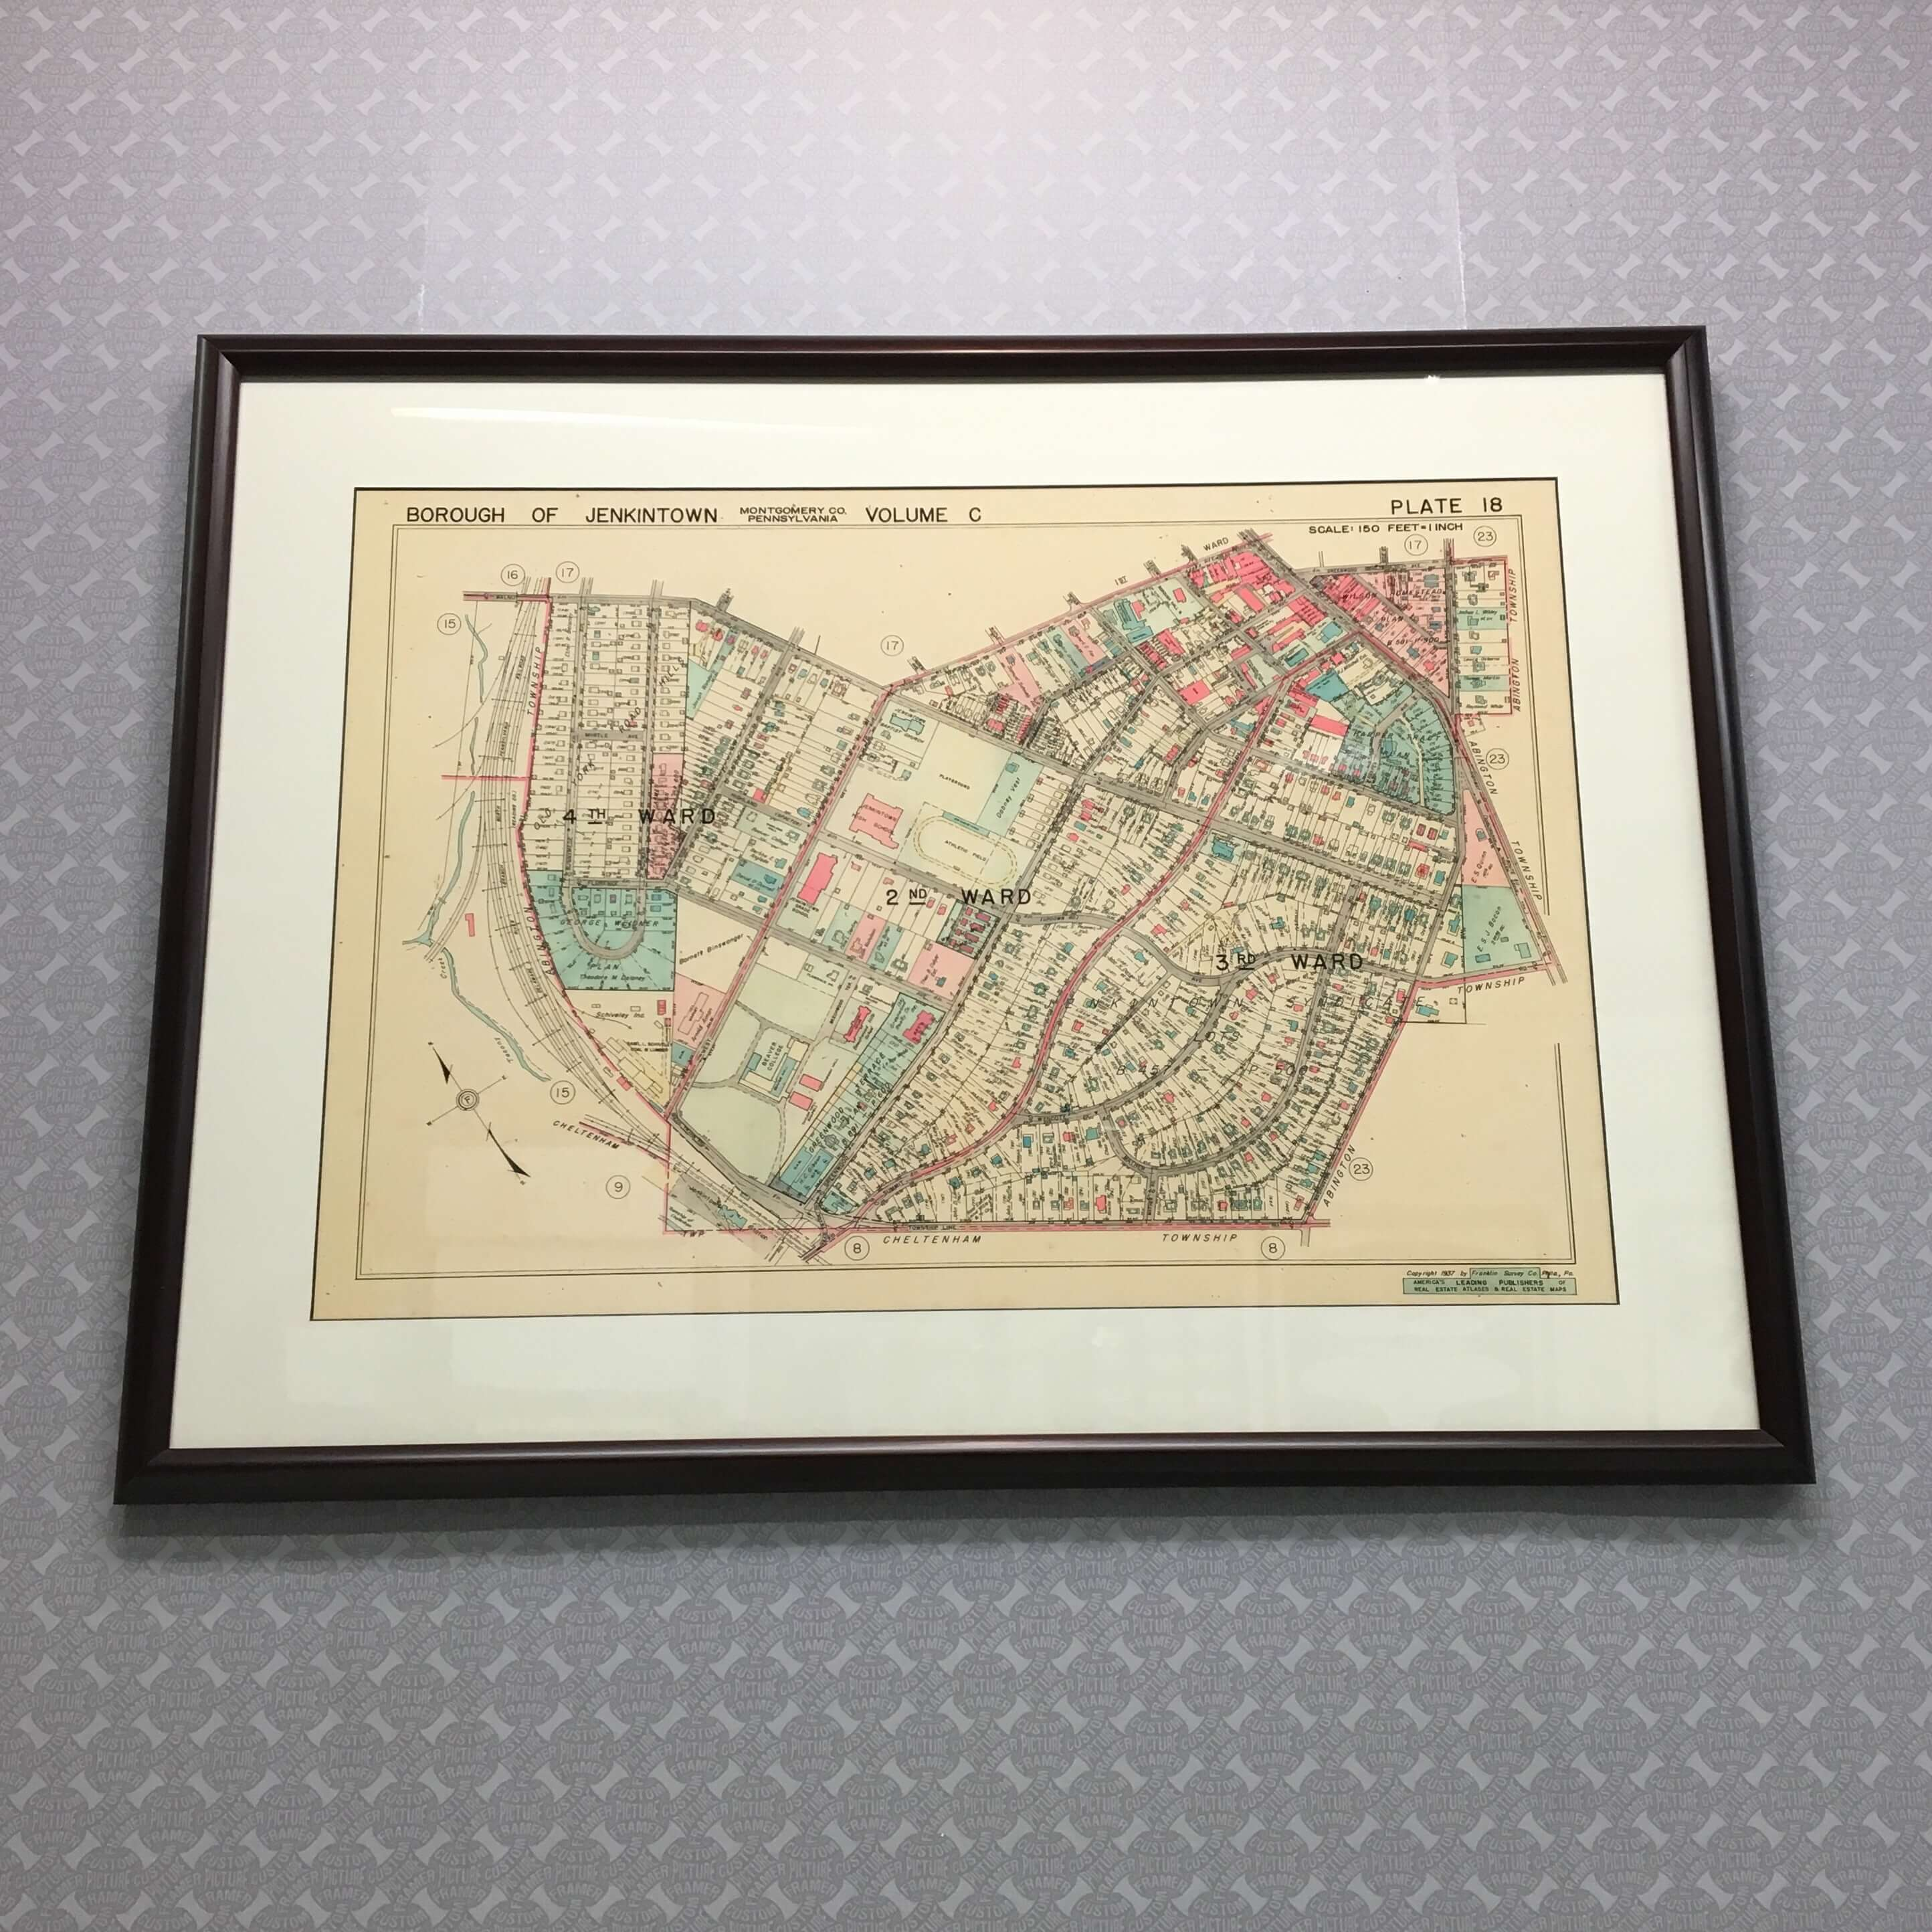 Historical maps are informative works of art. Frame, reminisce, and enjoy! See more custom framing options at our Keswick Village showroom just north of Philadelphia in Glenside PA ( Pennsylvania ) , 19038 . Custom Picture Framer of Glenside carries thousands of frame styles, prints, maps, limited editions, mirrors, and more!